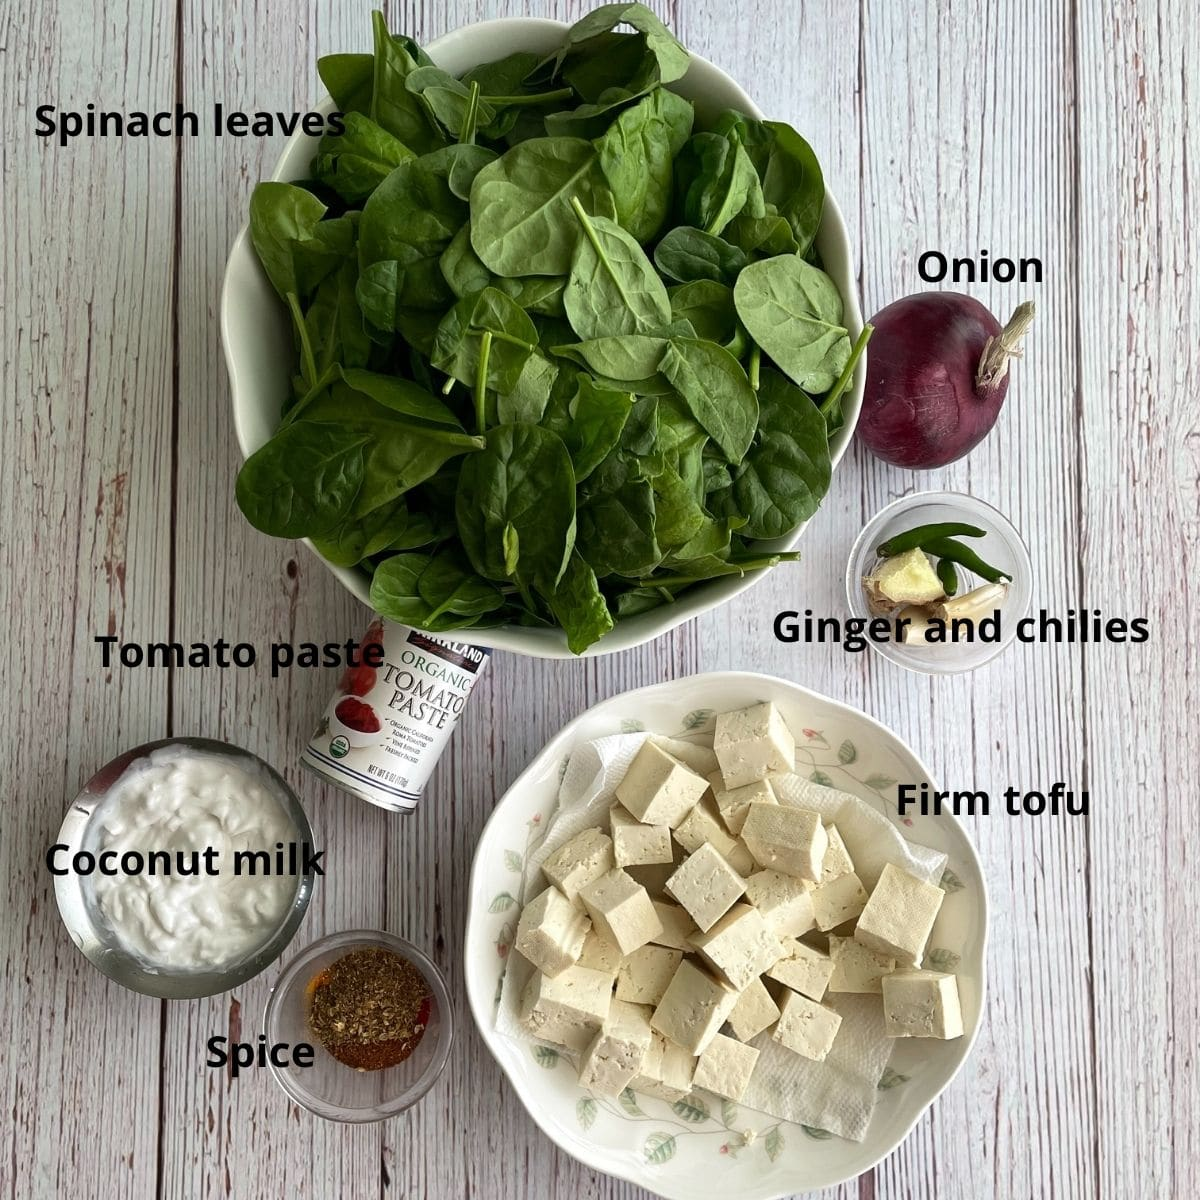 Spinach leaves, firm tofu, spices, onion and tomato paste are on the table for curry